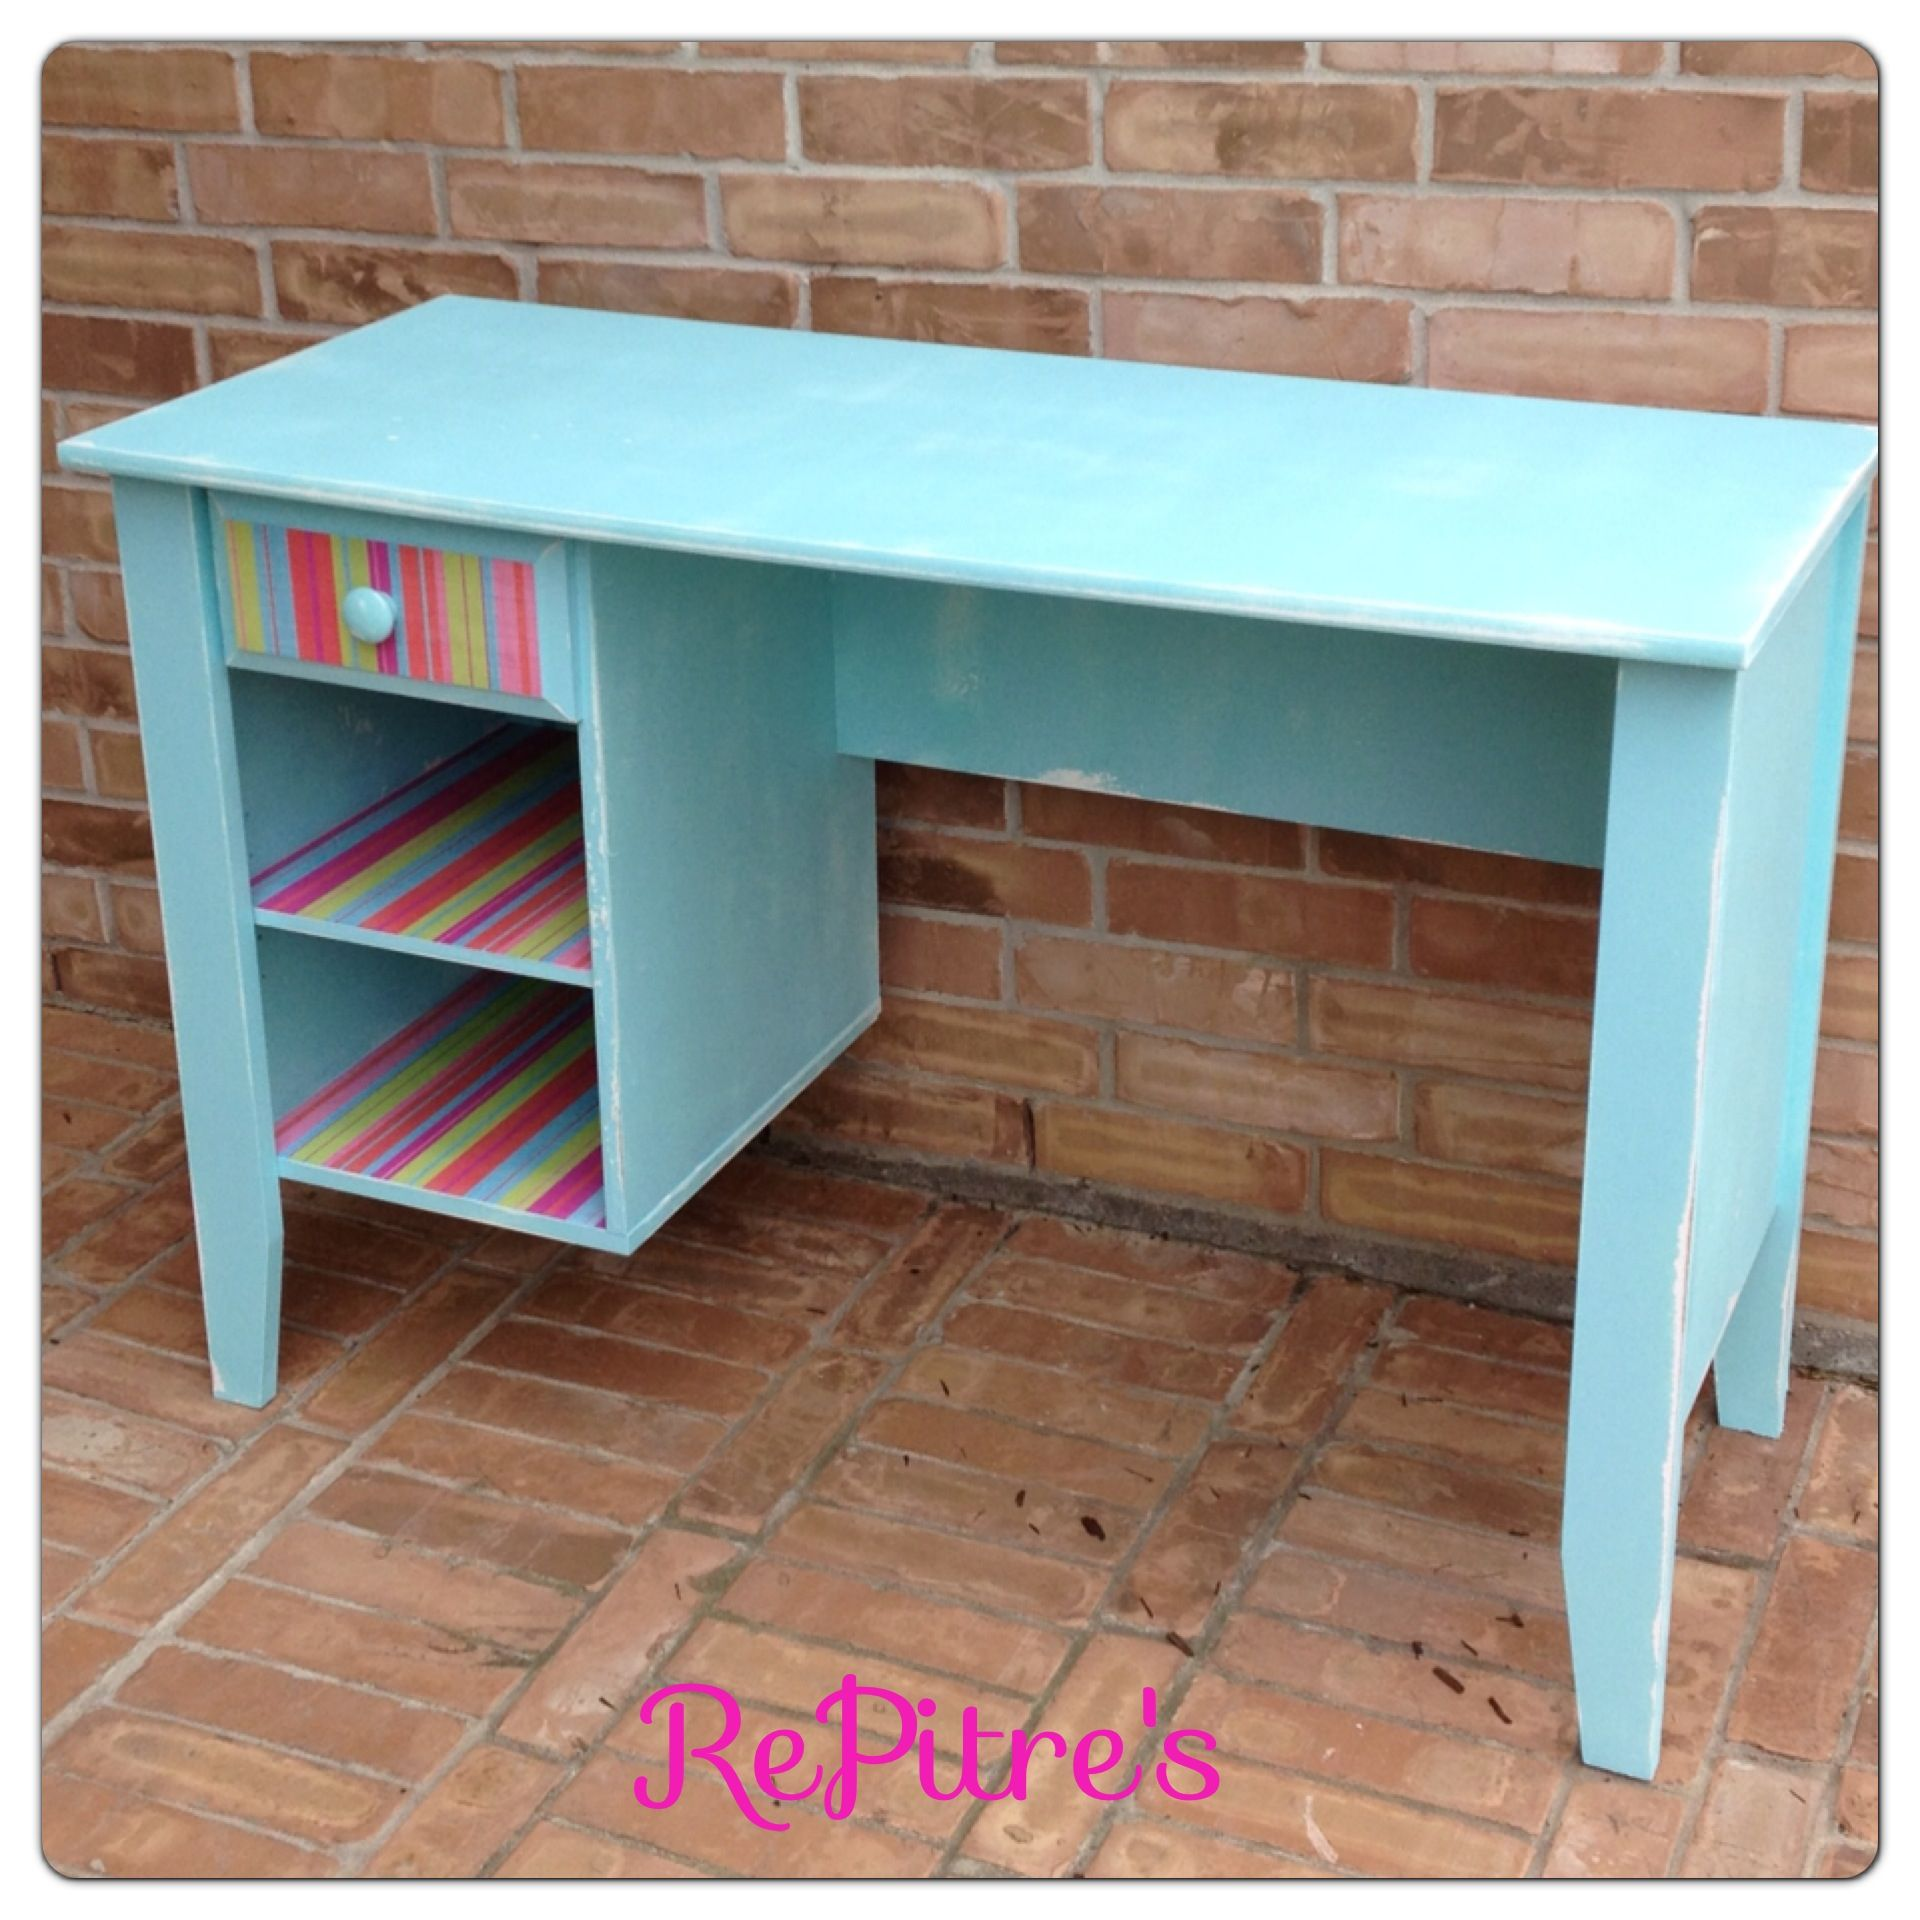 Little girls desk painted robin egg blue with distressing and